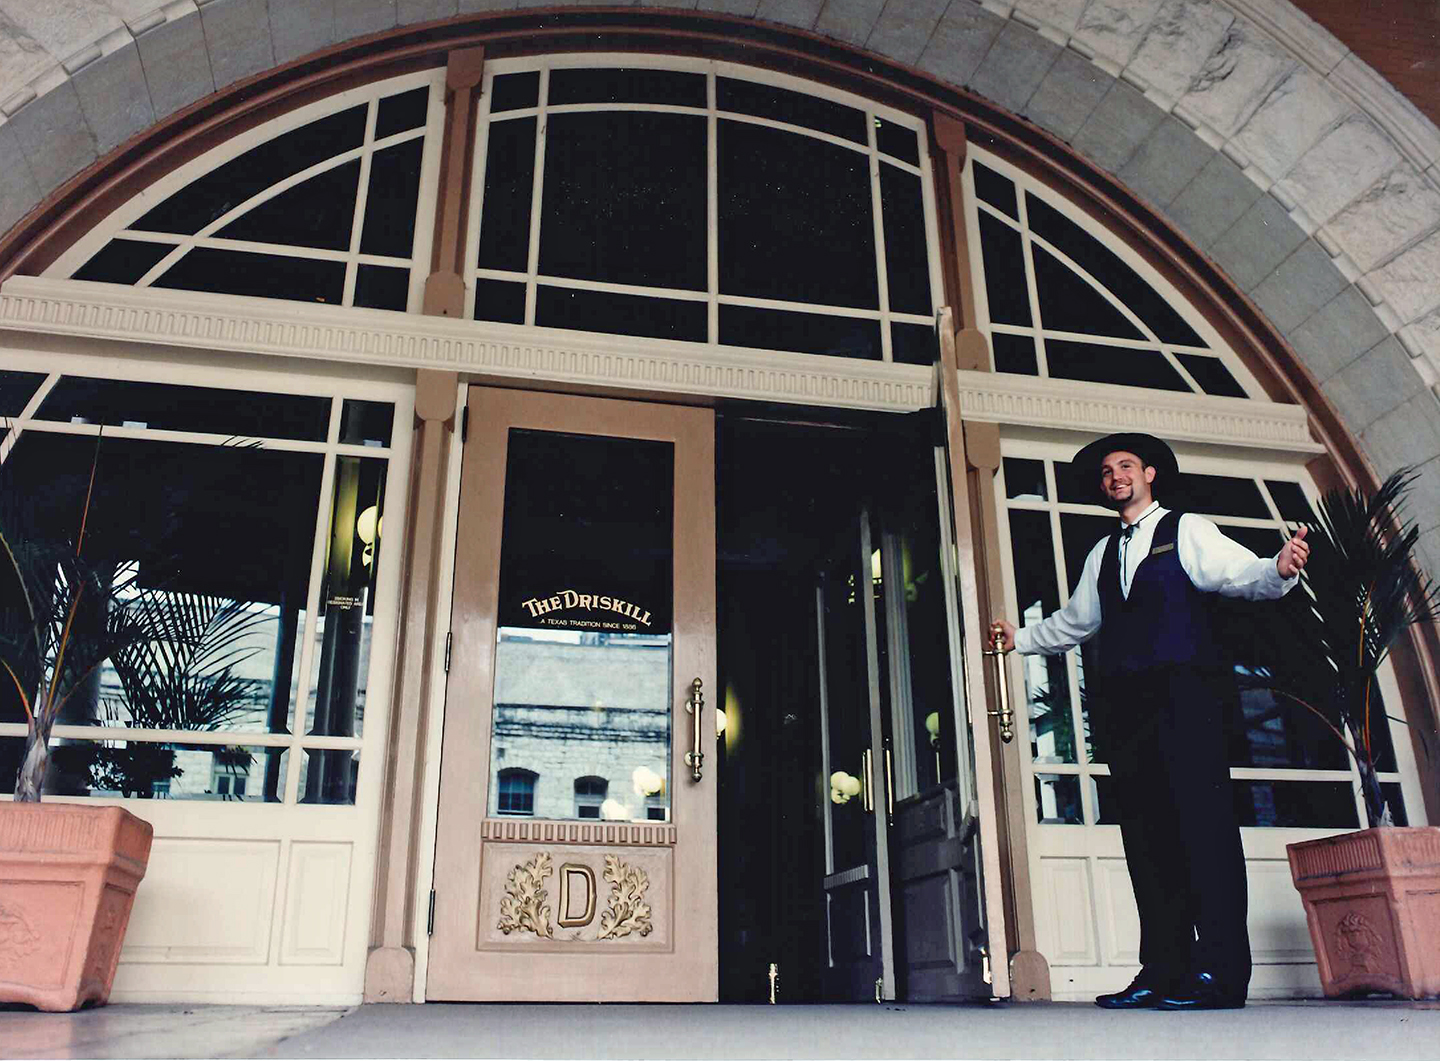 The Driskill Hotel Entrance in the late Nineties in Austin, Texas